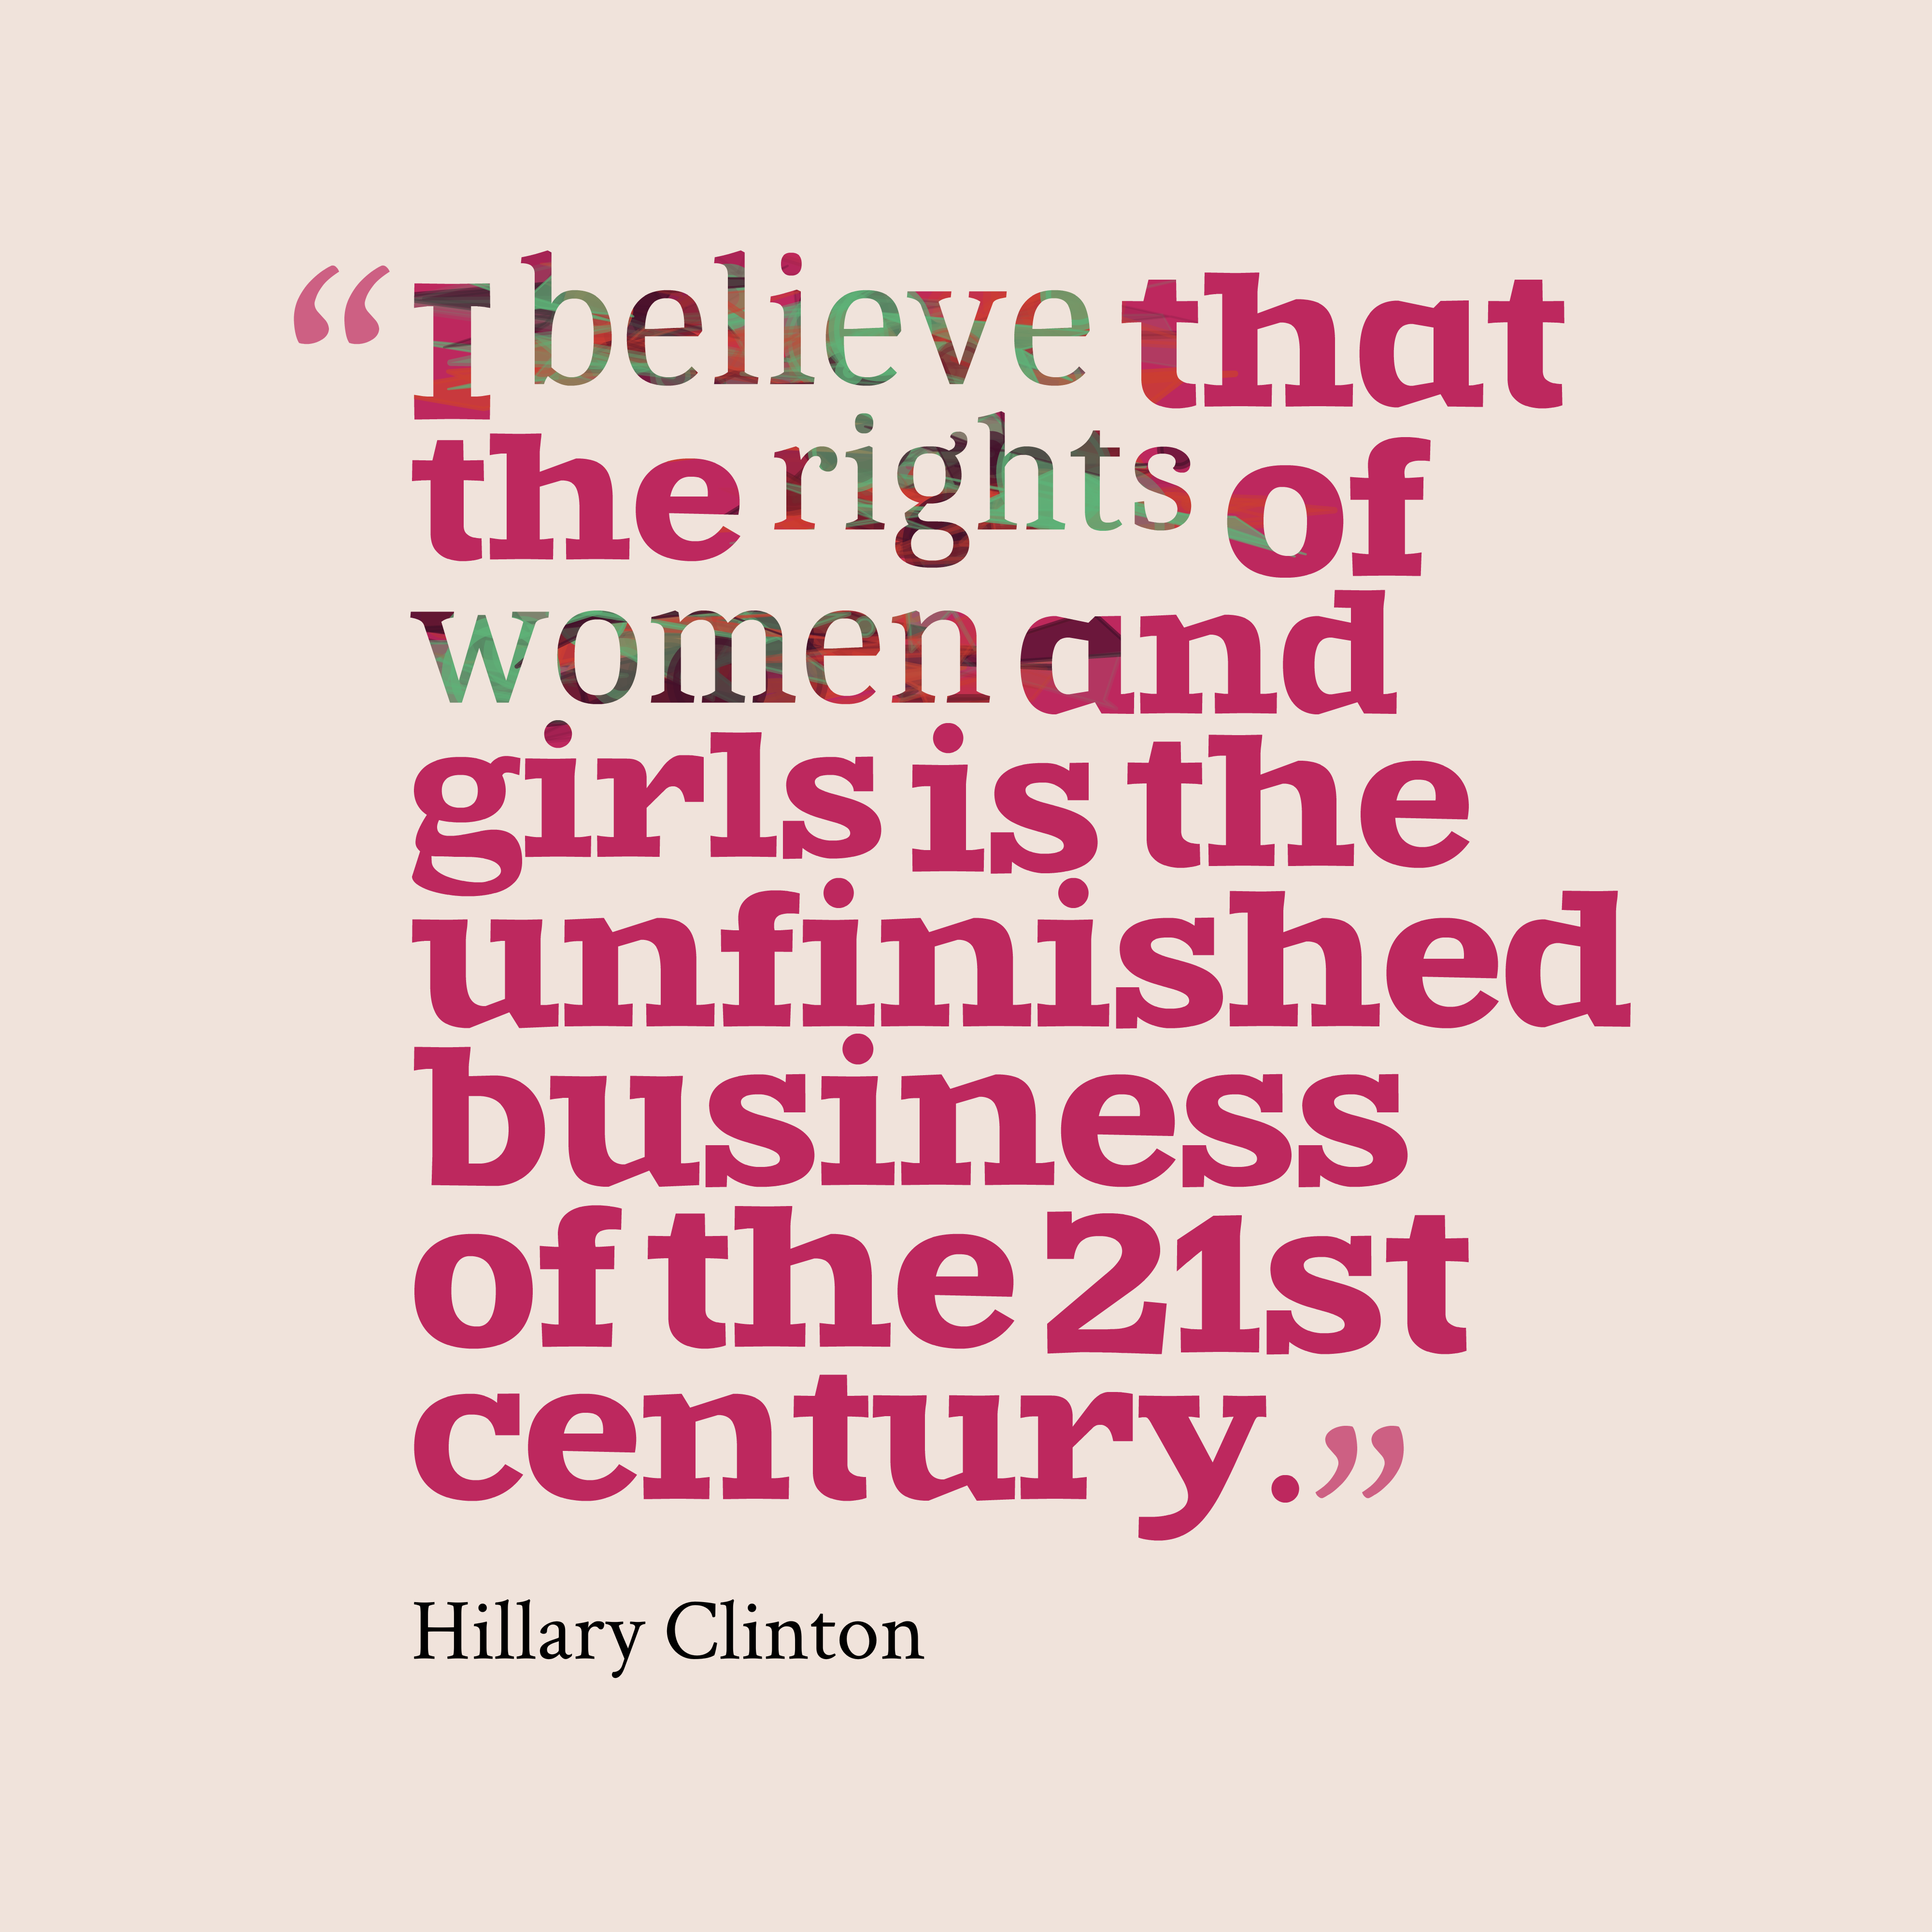 Quotes About Women's Rights Women's Rights Quotes Prepossessing Women Quotes Tumblr About Men